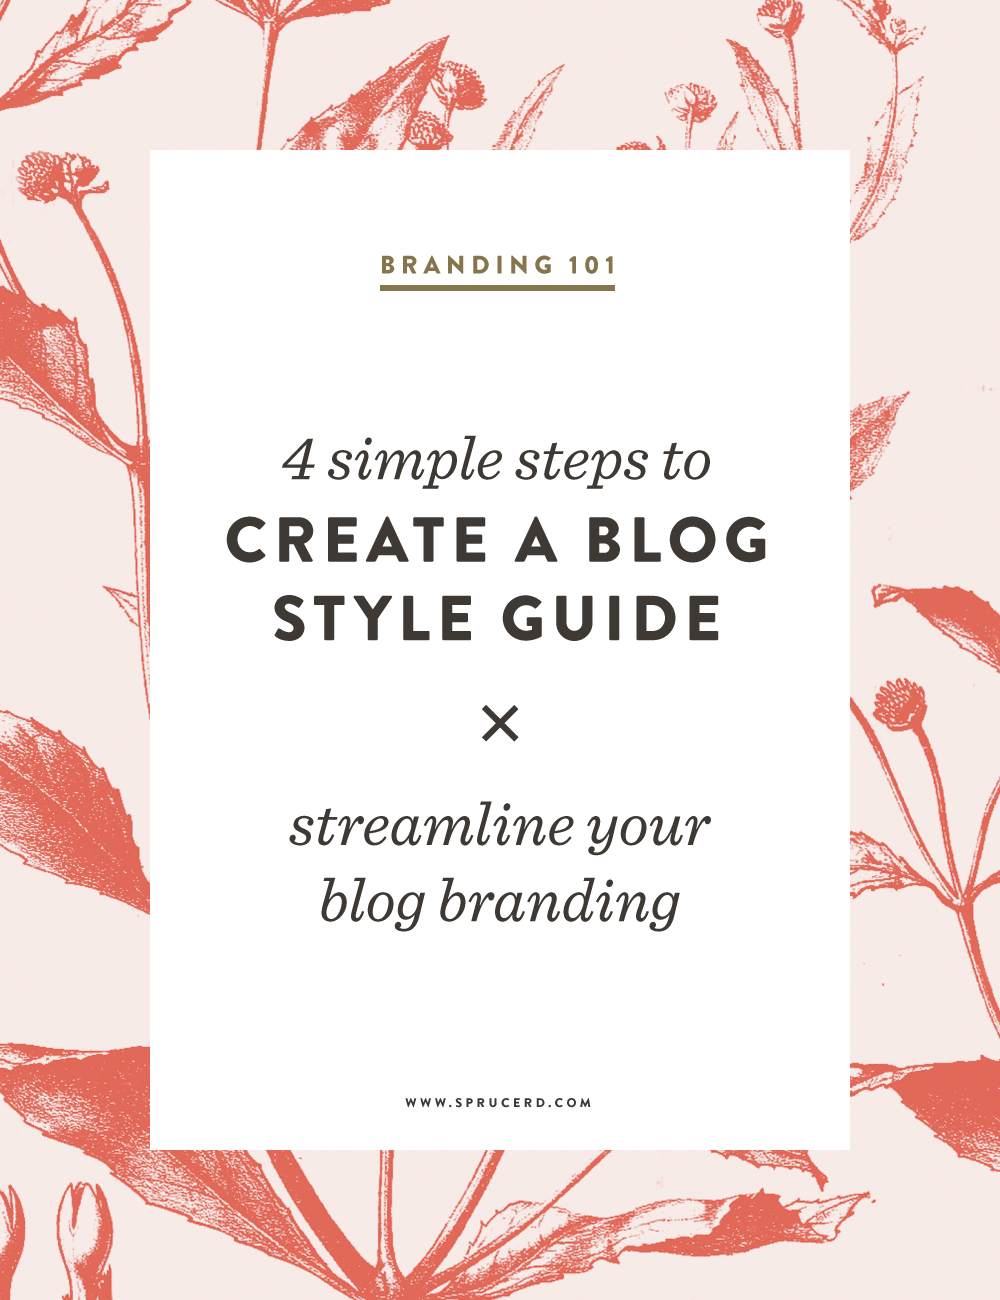 4 simple steps to Create a Blog Style Guide | Spruce Rd. #blog #branding